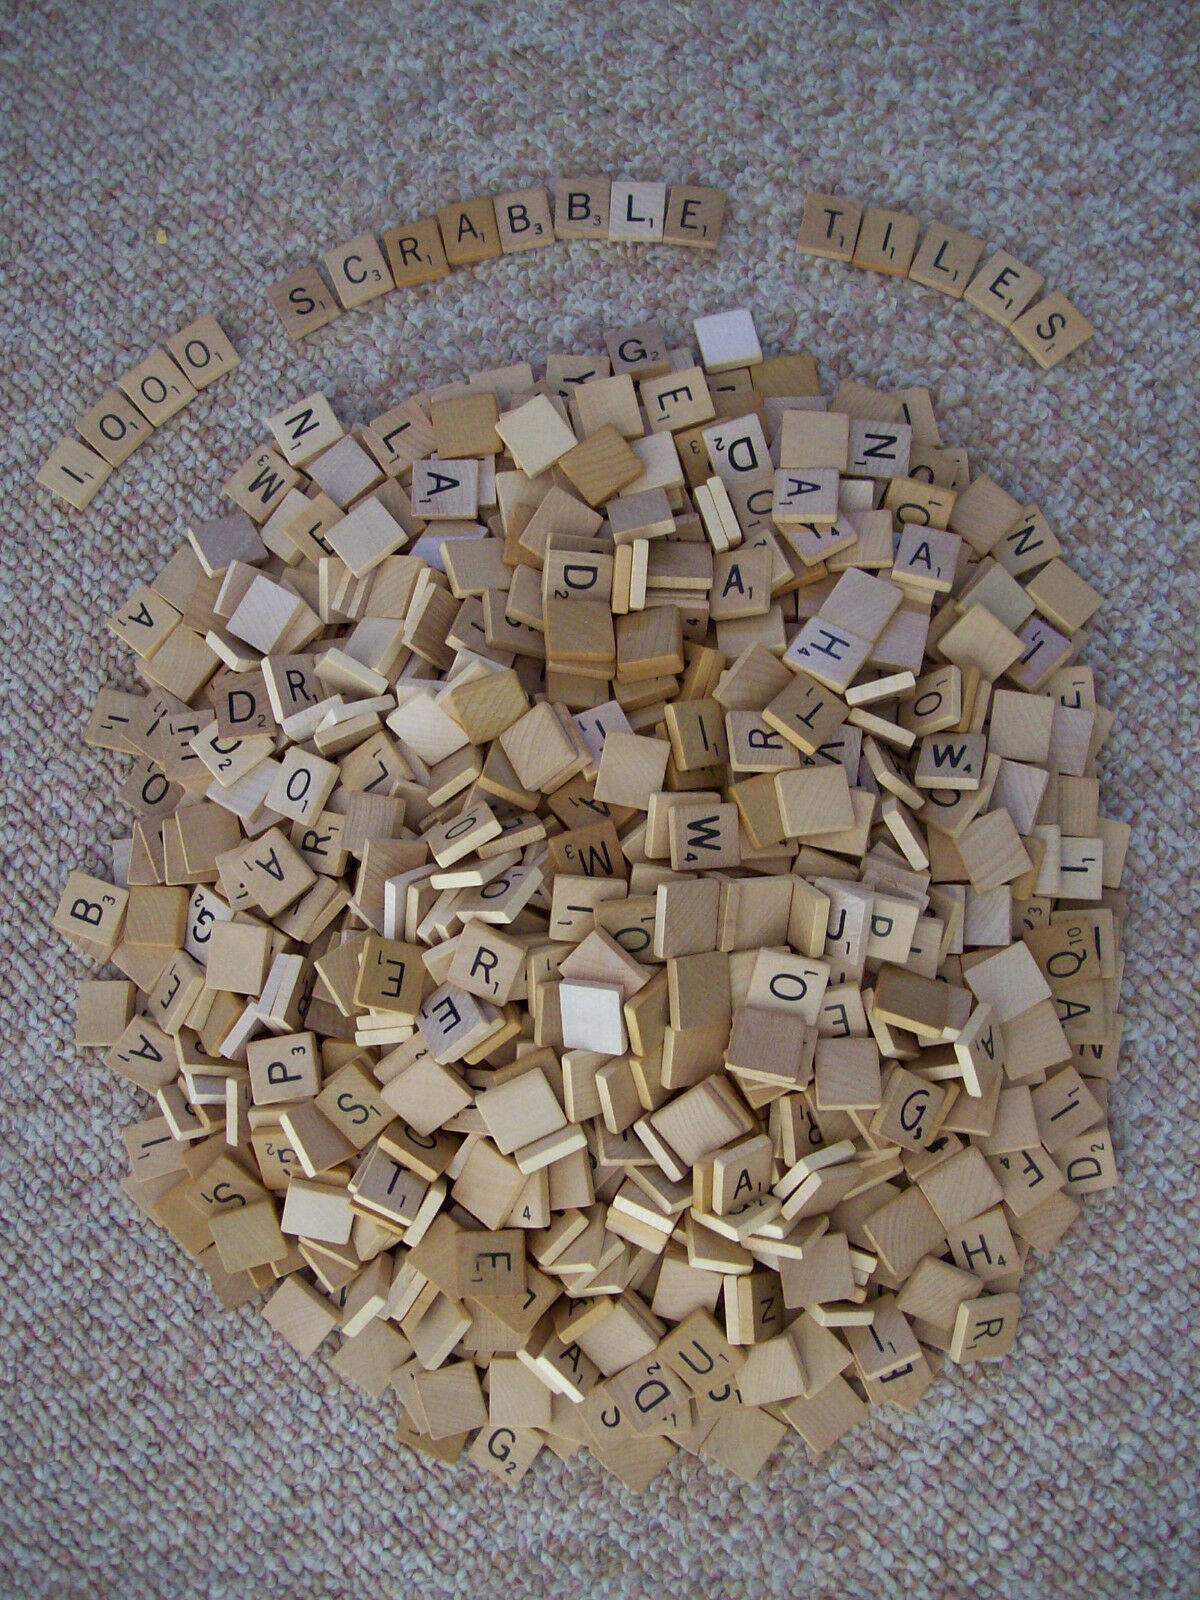 Lot of 1000 Wood Scrabble Game Letter Tiles